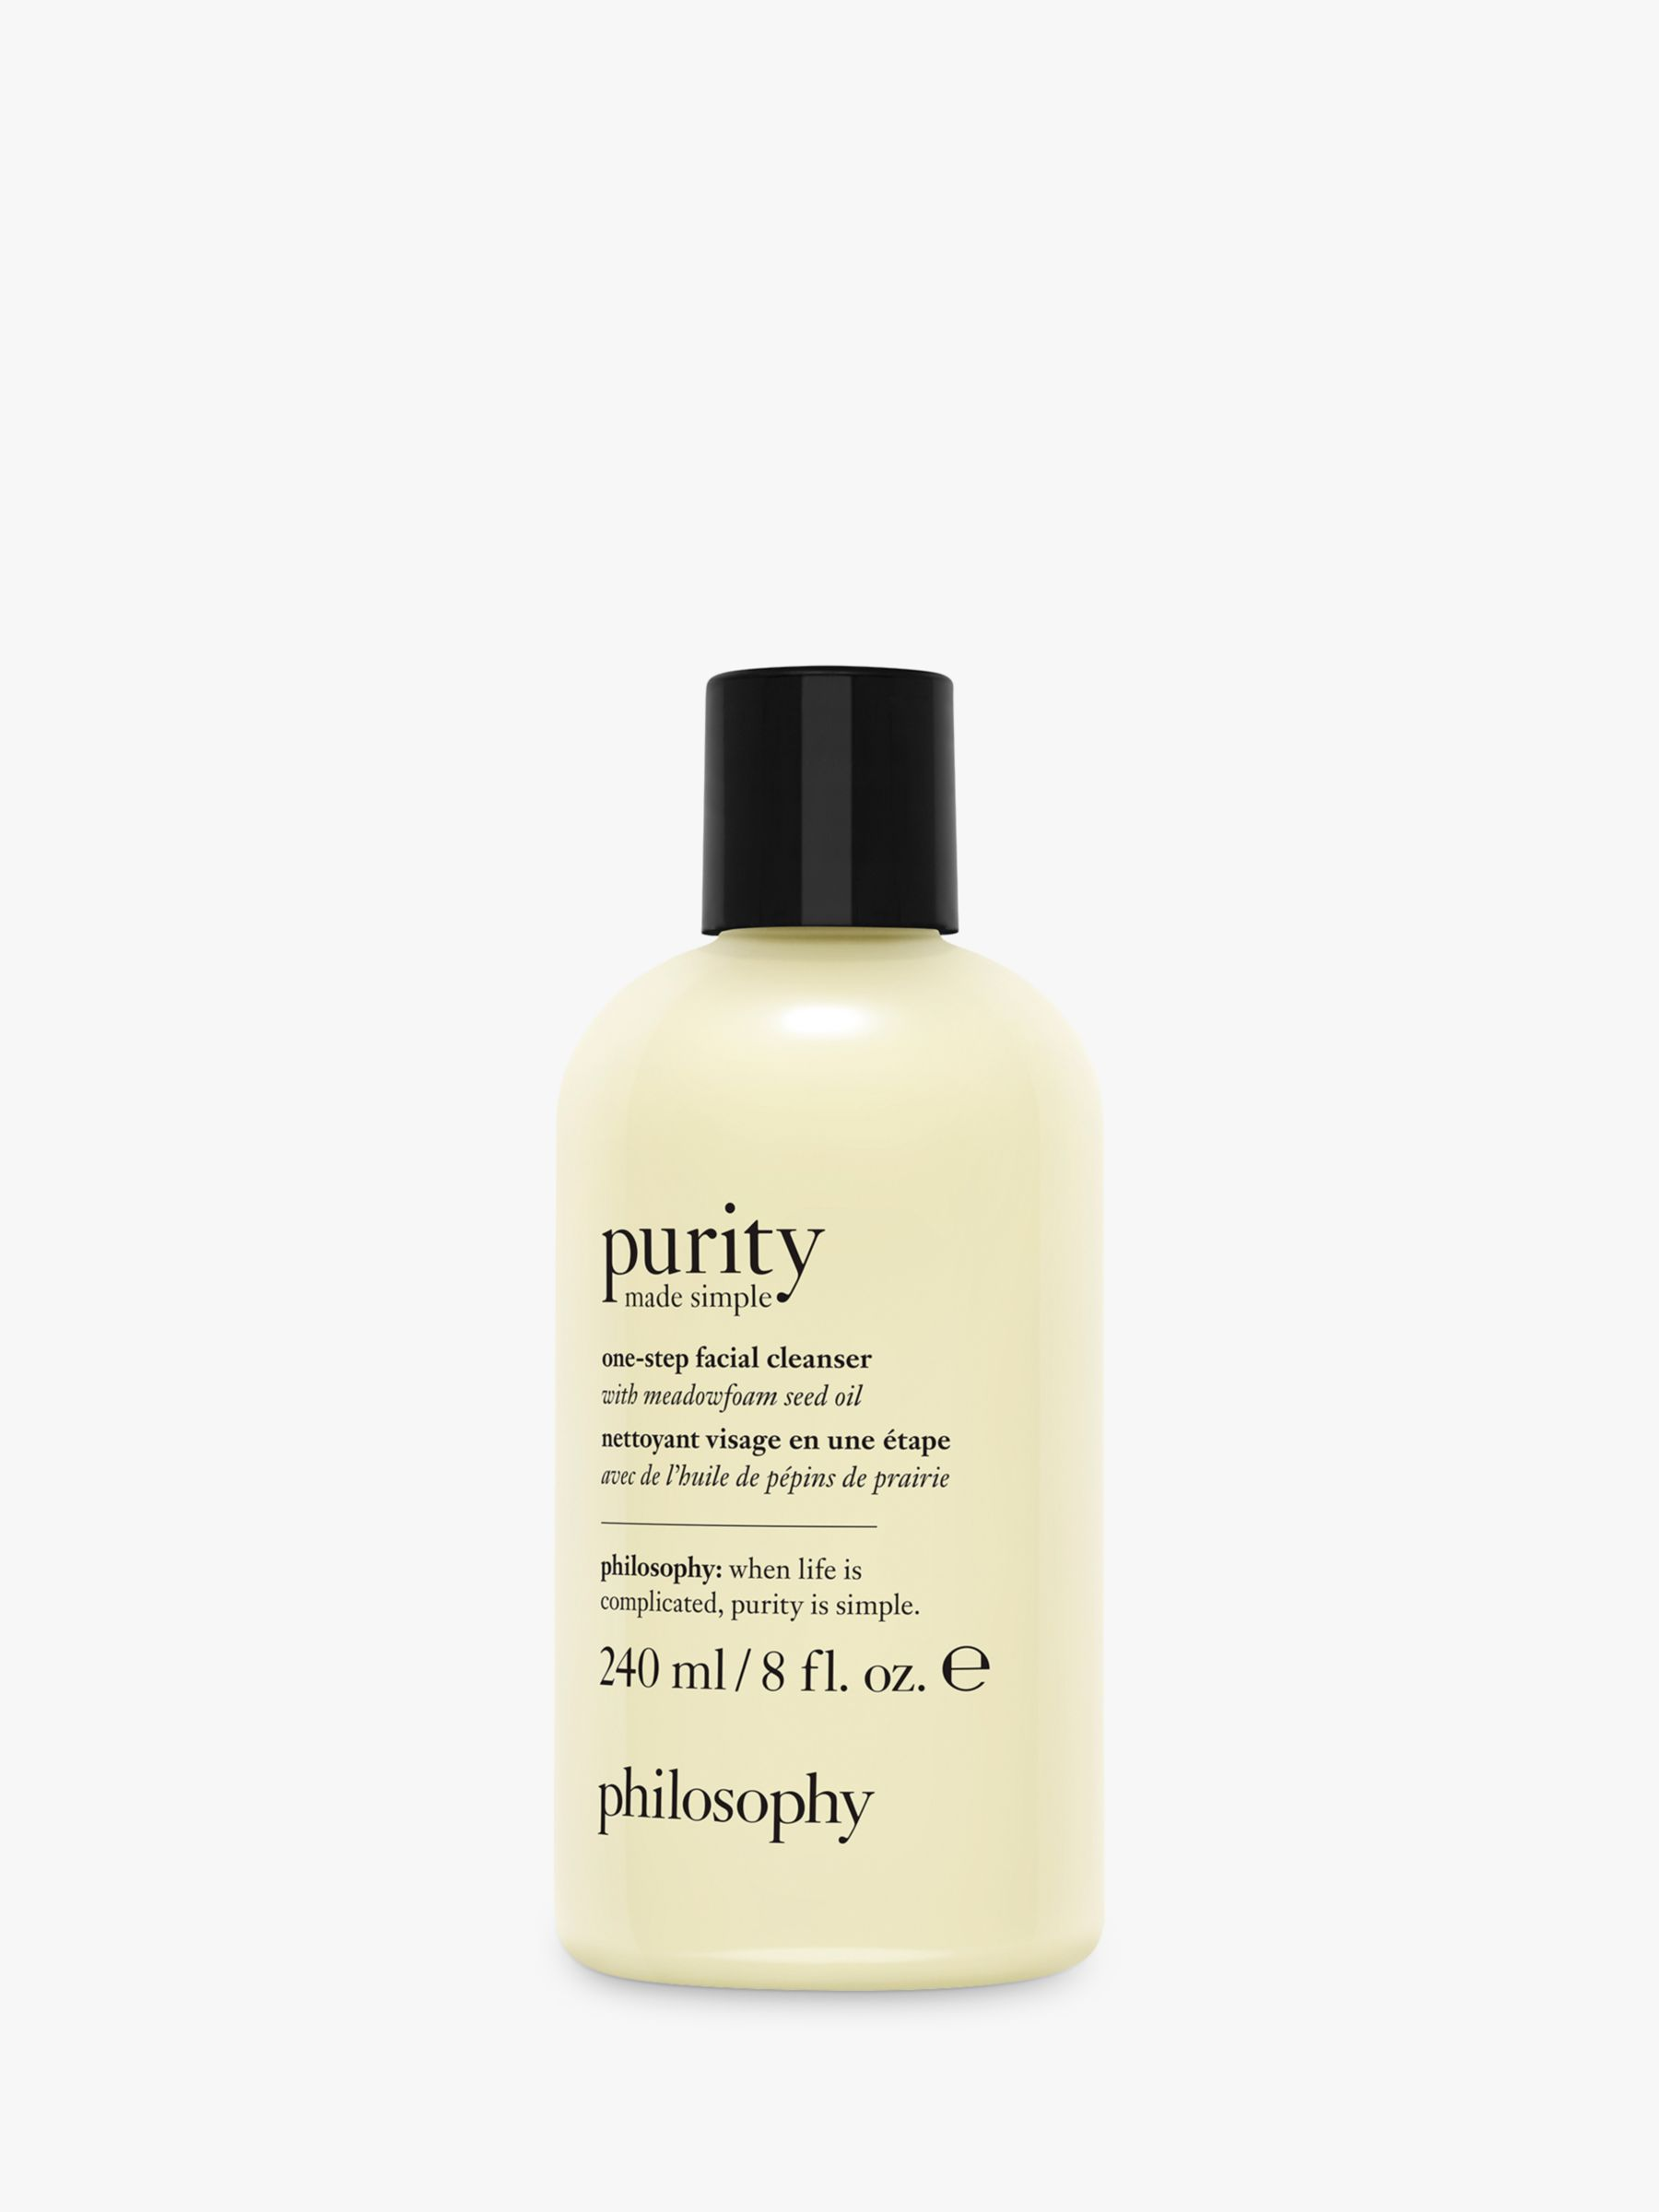 Philosophy Philosophy Purity Made Simple One-Step Facial Cleanser